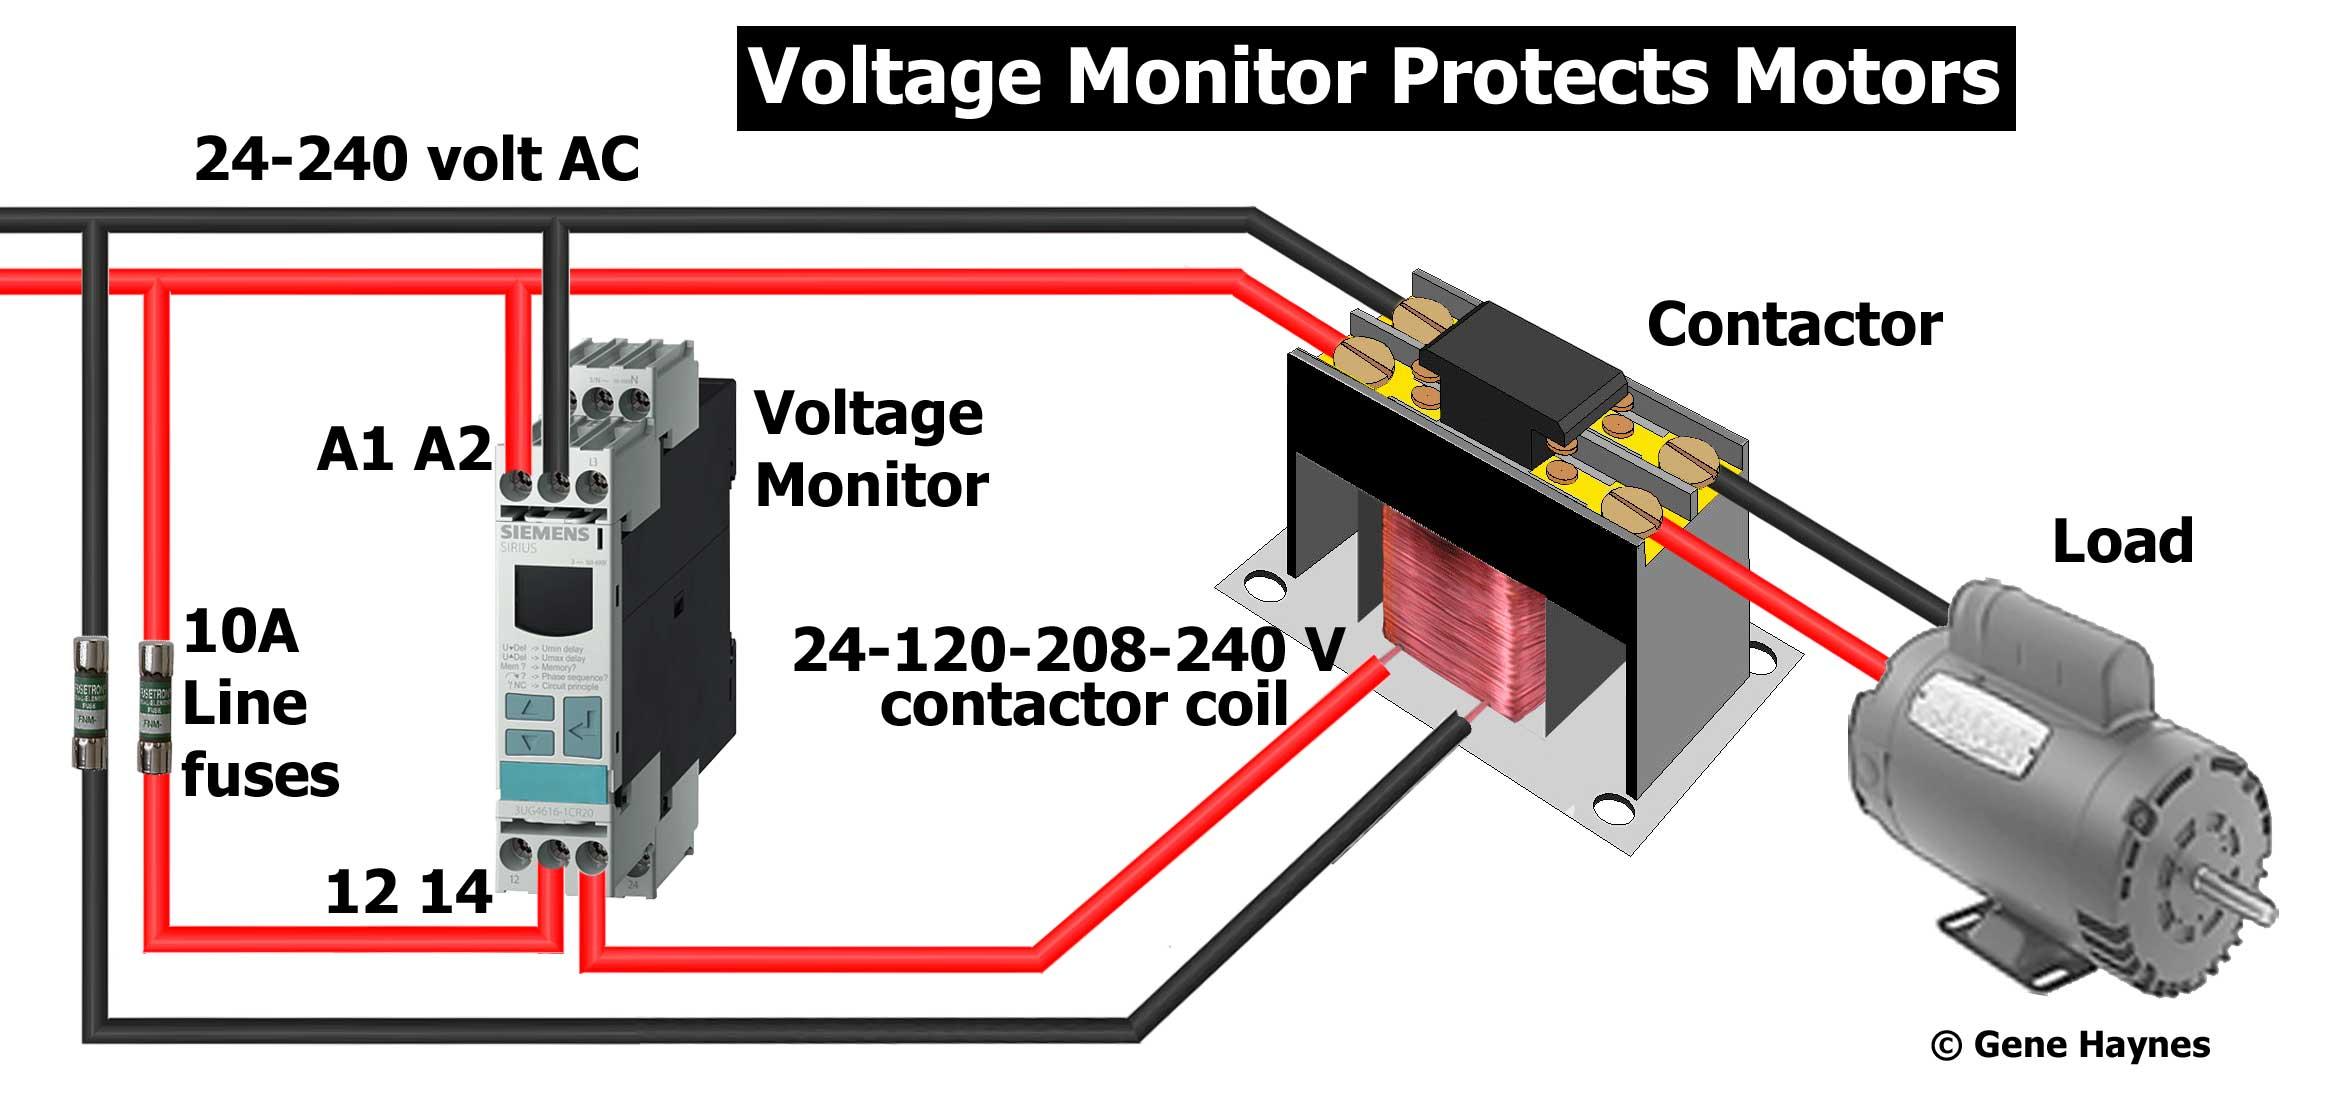 contactor wiring diagram single phase 240 volt pressure switch how to wire monitor larger image siemens voltage rated 24 ac